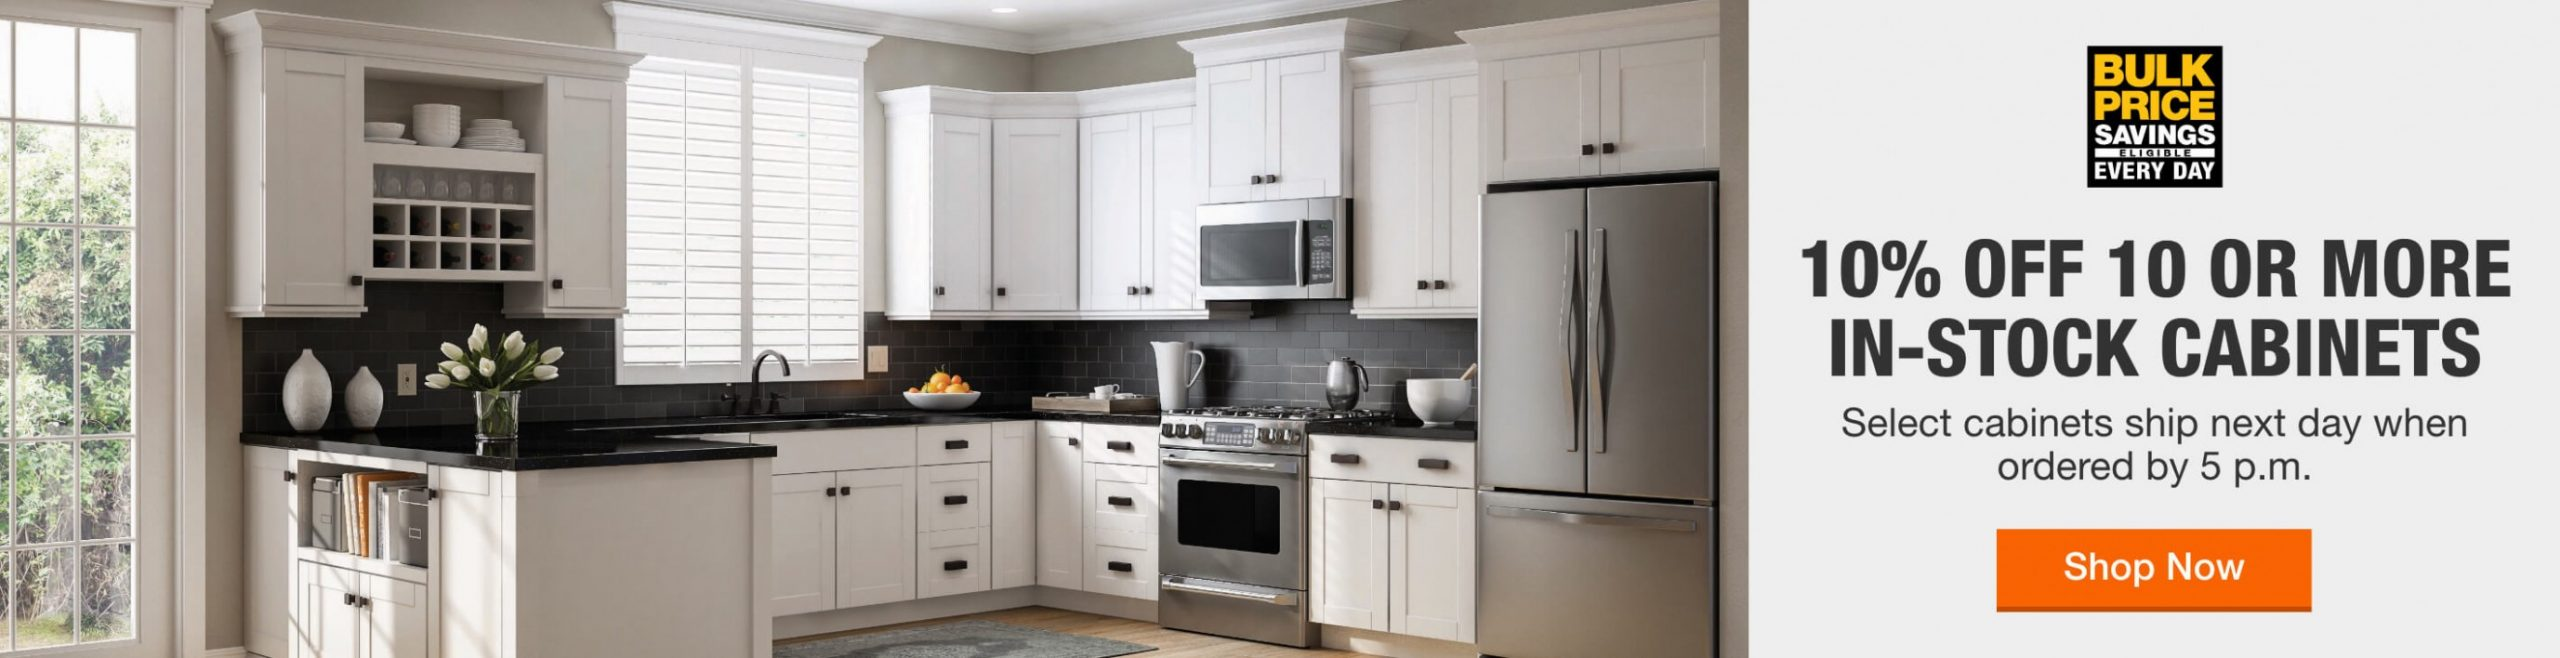 Kitchen Cabinets - The Home Depot - Best Home Kitchen Cabinets